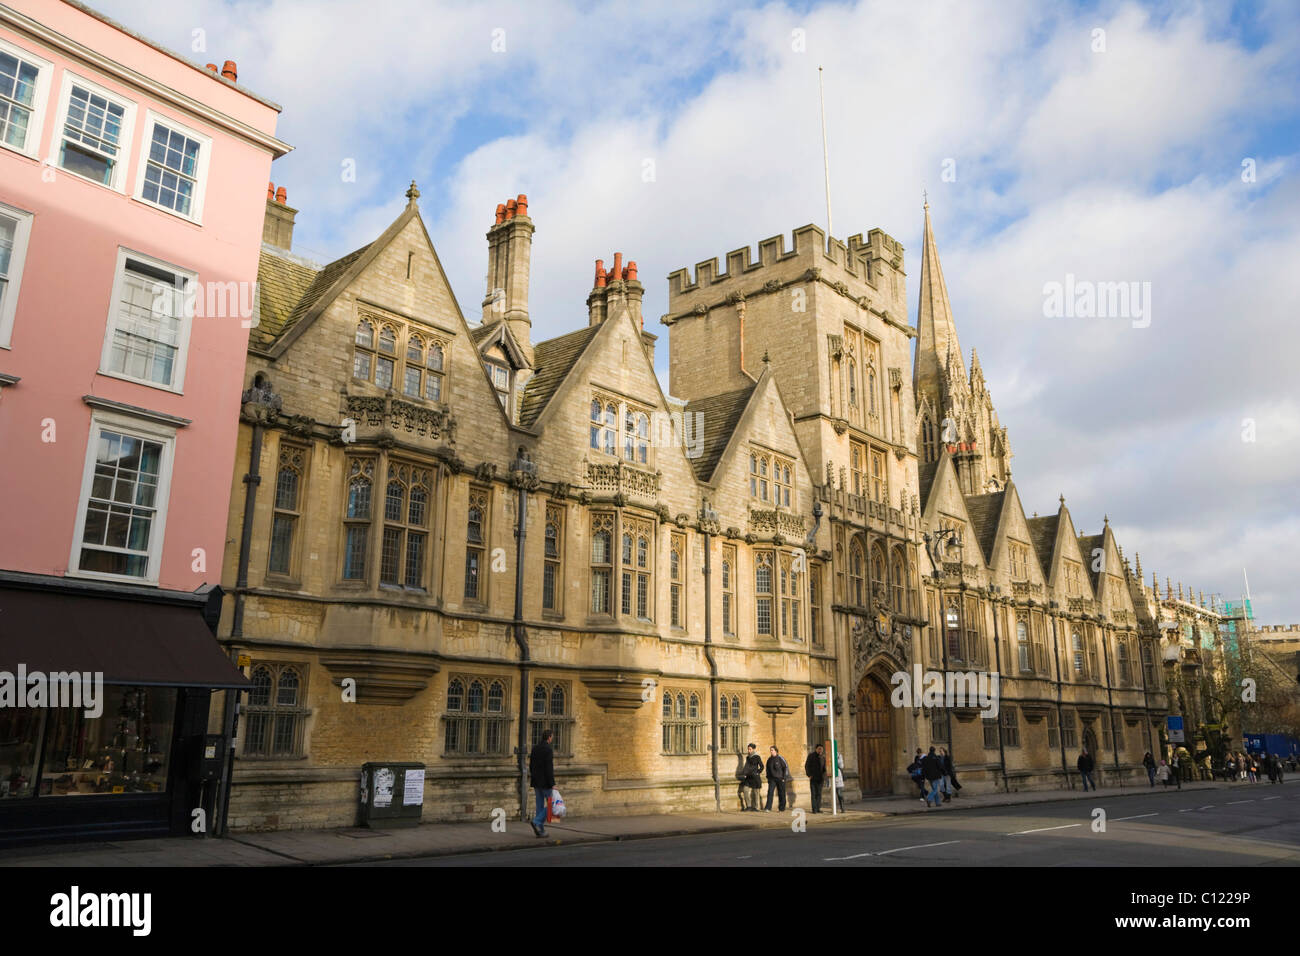 Brasenose College, High Street, Oxford, Oxfordshire, England, United Kingdom, Europe - Stock Image